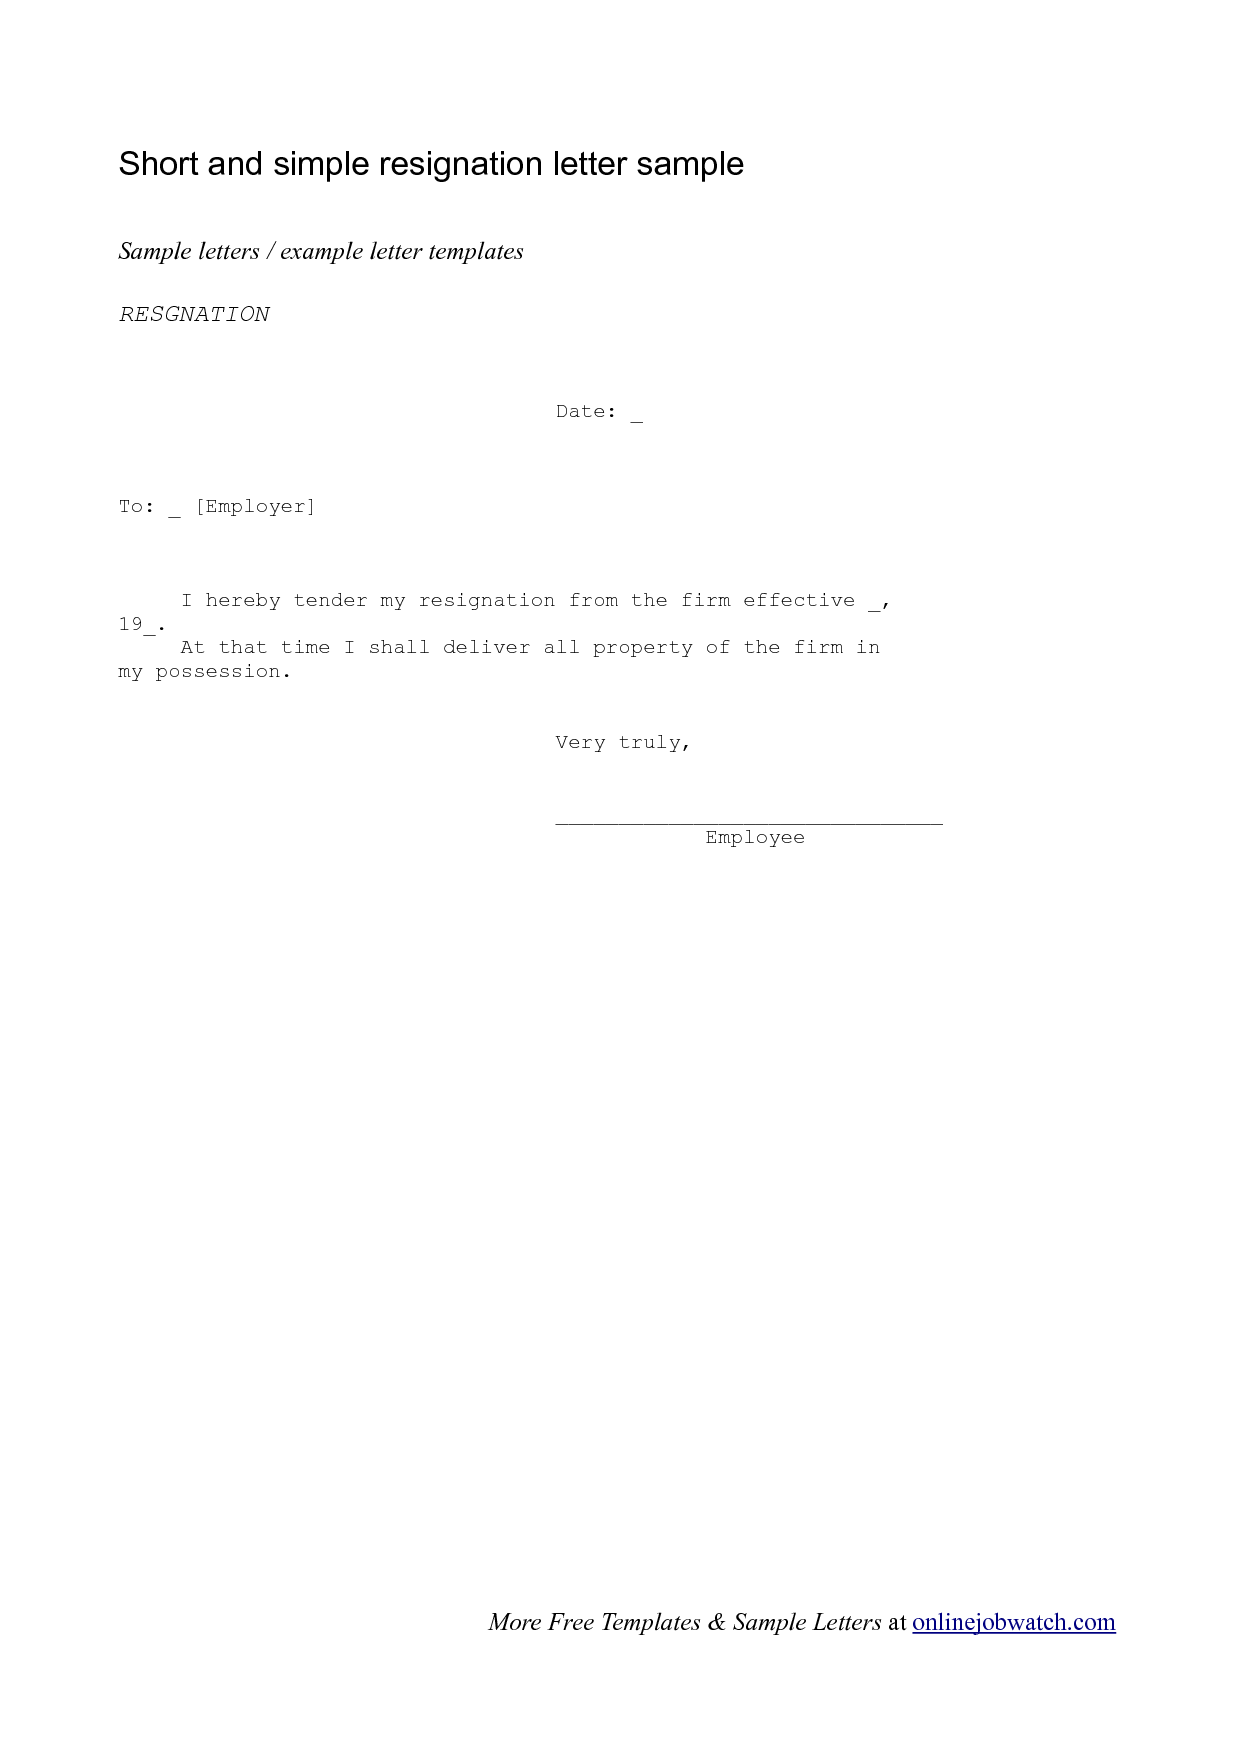 Pin By Template On Template Resignation Sample Letter